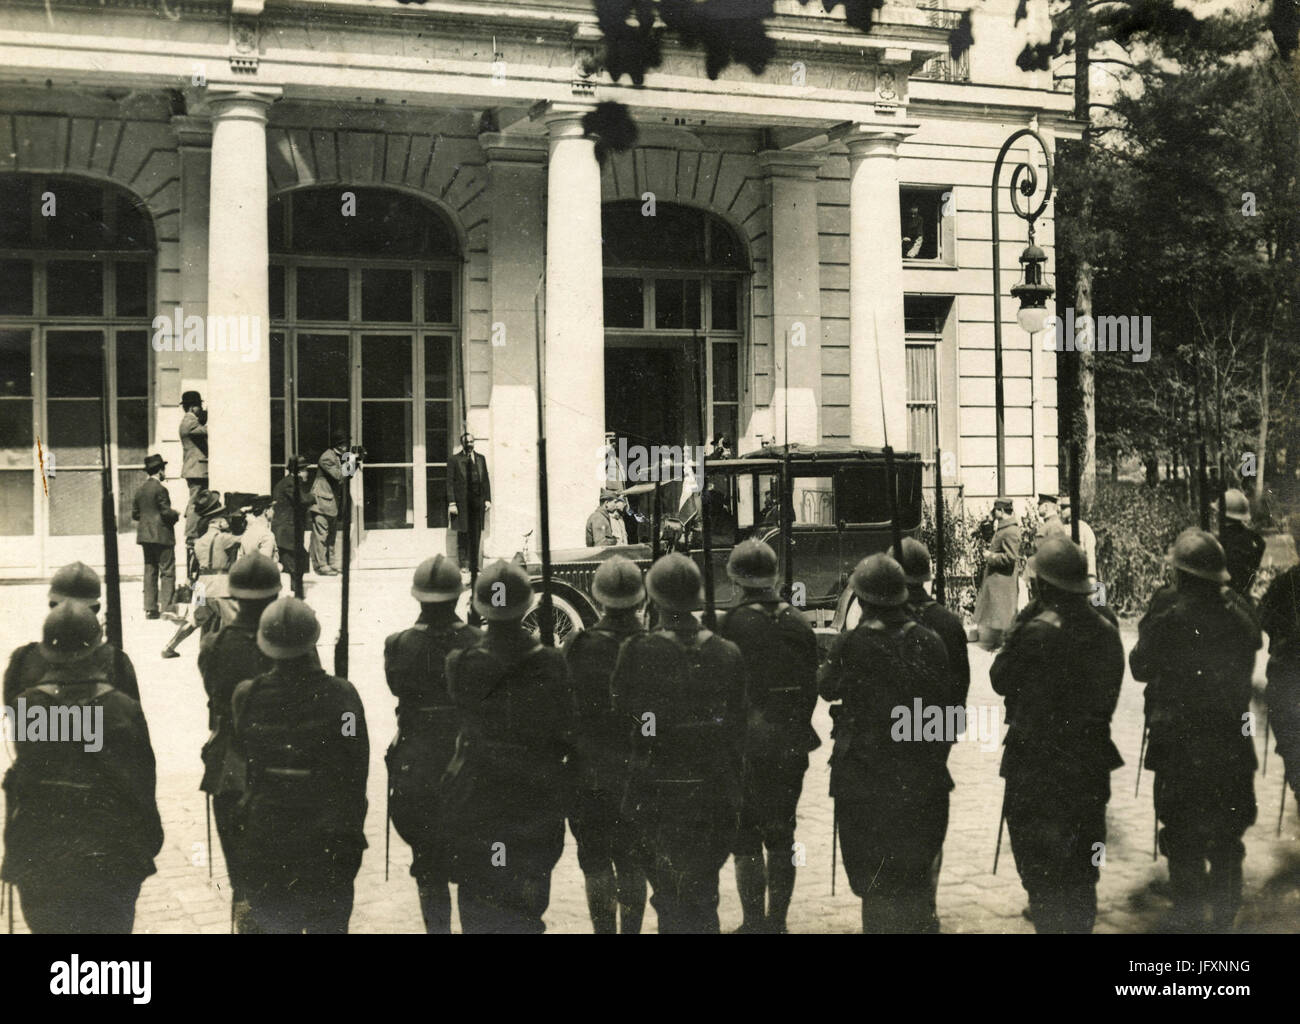 French PM Georges Clemenceau arrives at Versailles for the Peace Treaty after WW1, France - Stock Image